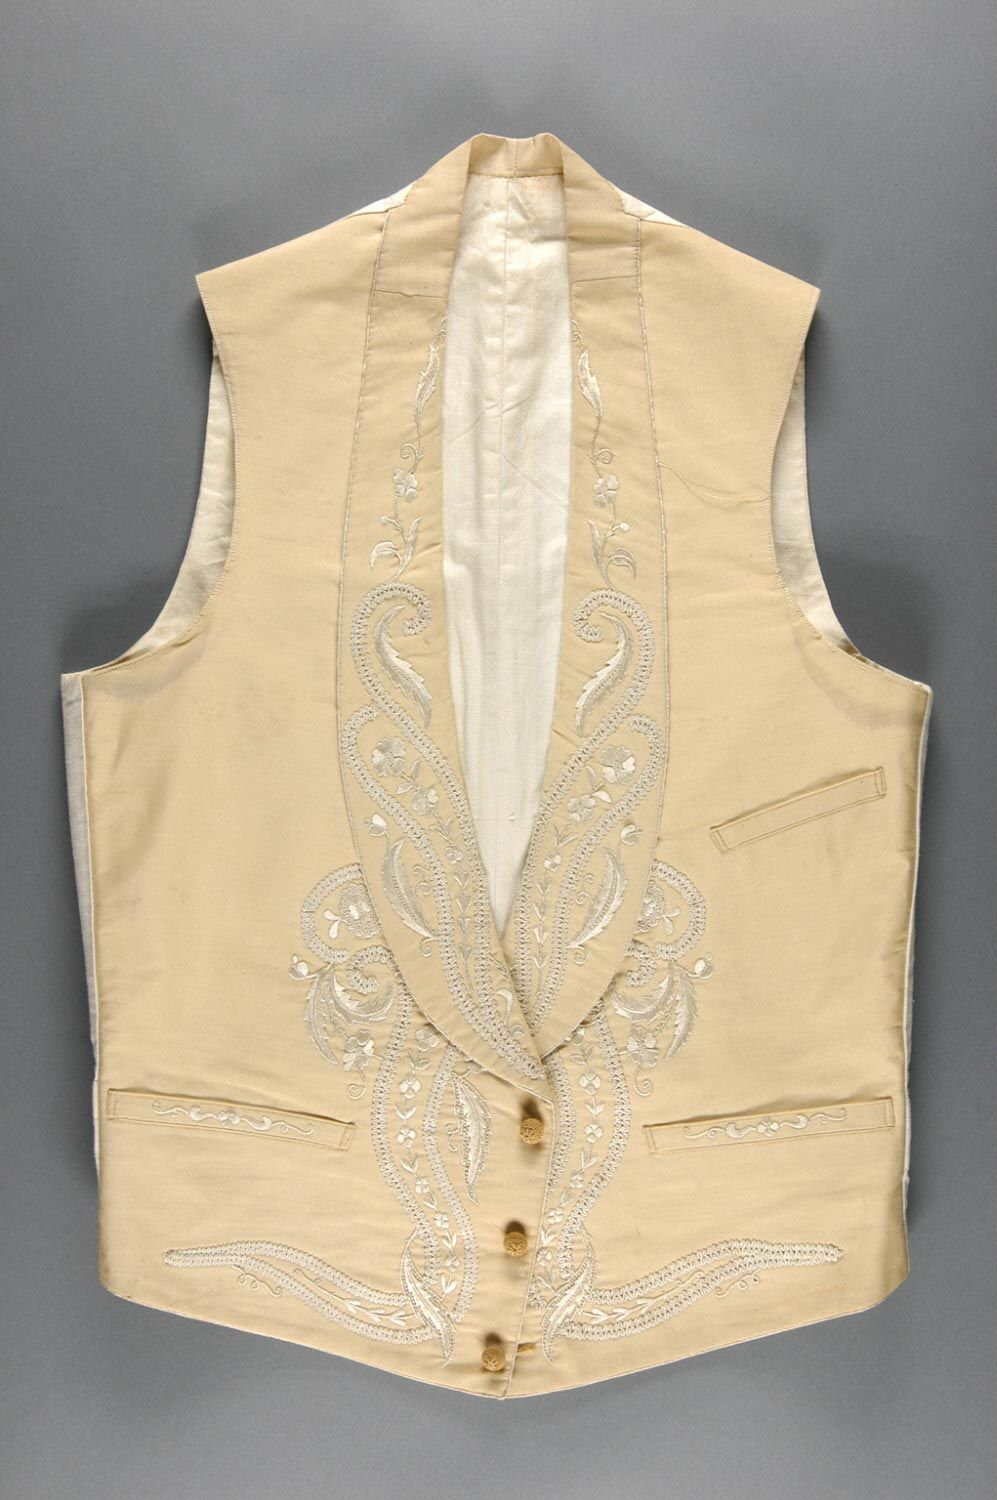 3dd814e81d (c. 1840s) American waistcoat made of cotton and linen.